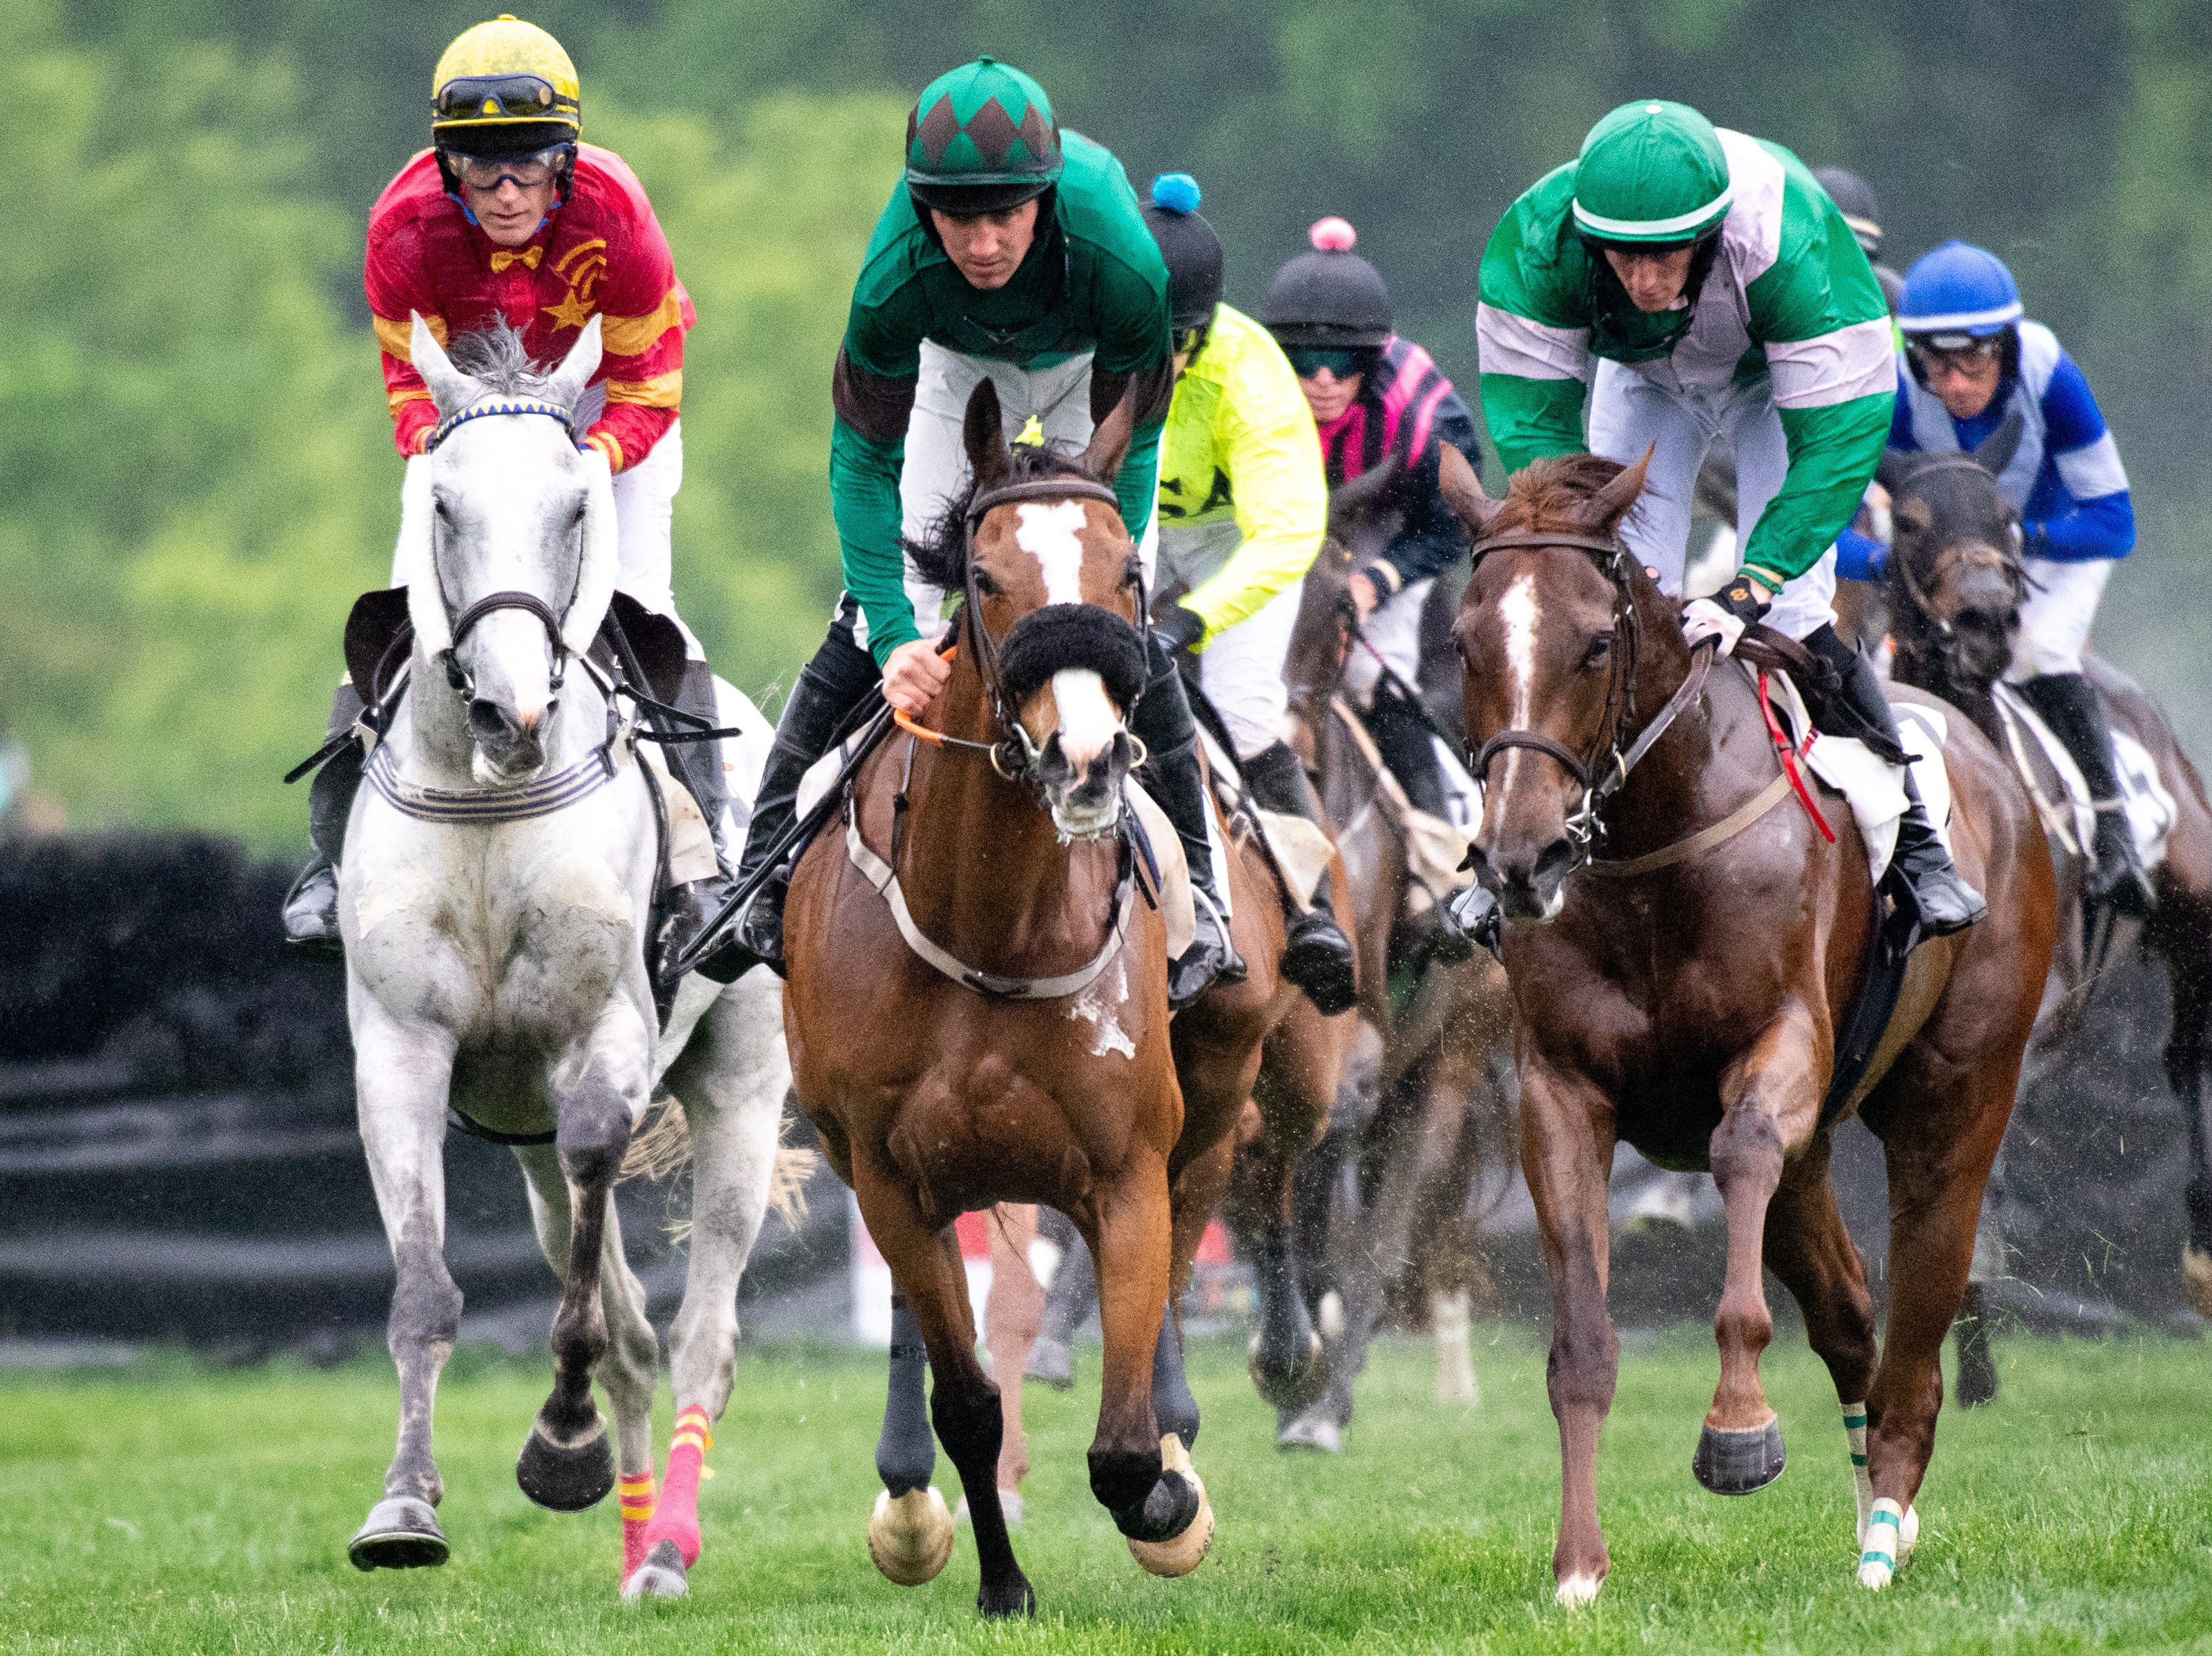 Horses and jockeys compete during the fourth race of the Iroquois Steeplechase at Percy Warner Park Saturday, May 11, 2019, in Nashville, Tenn.